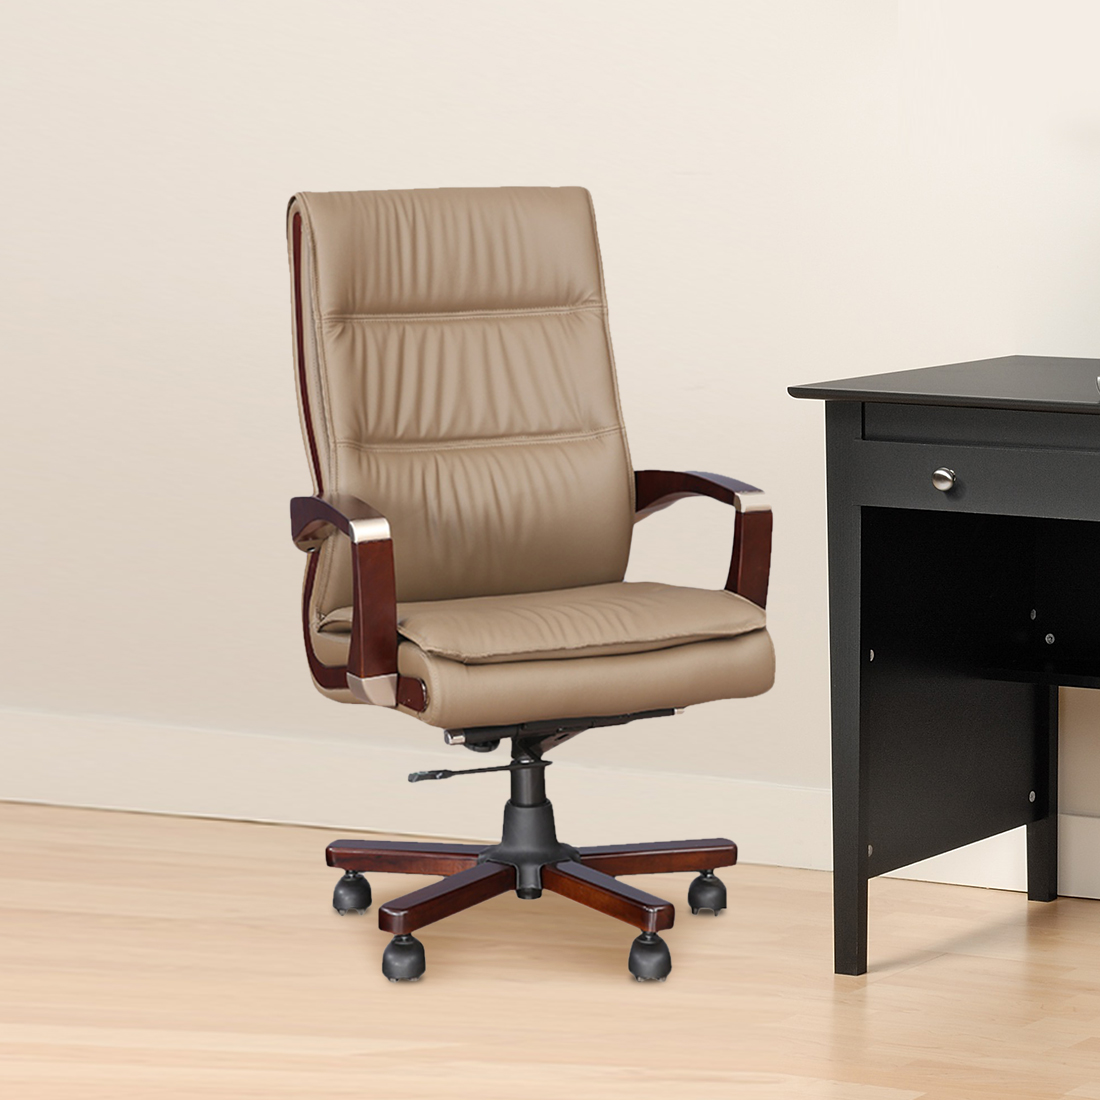 Opal Half Leather High Back Office Chair in Beige Colour by HomeTown